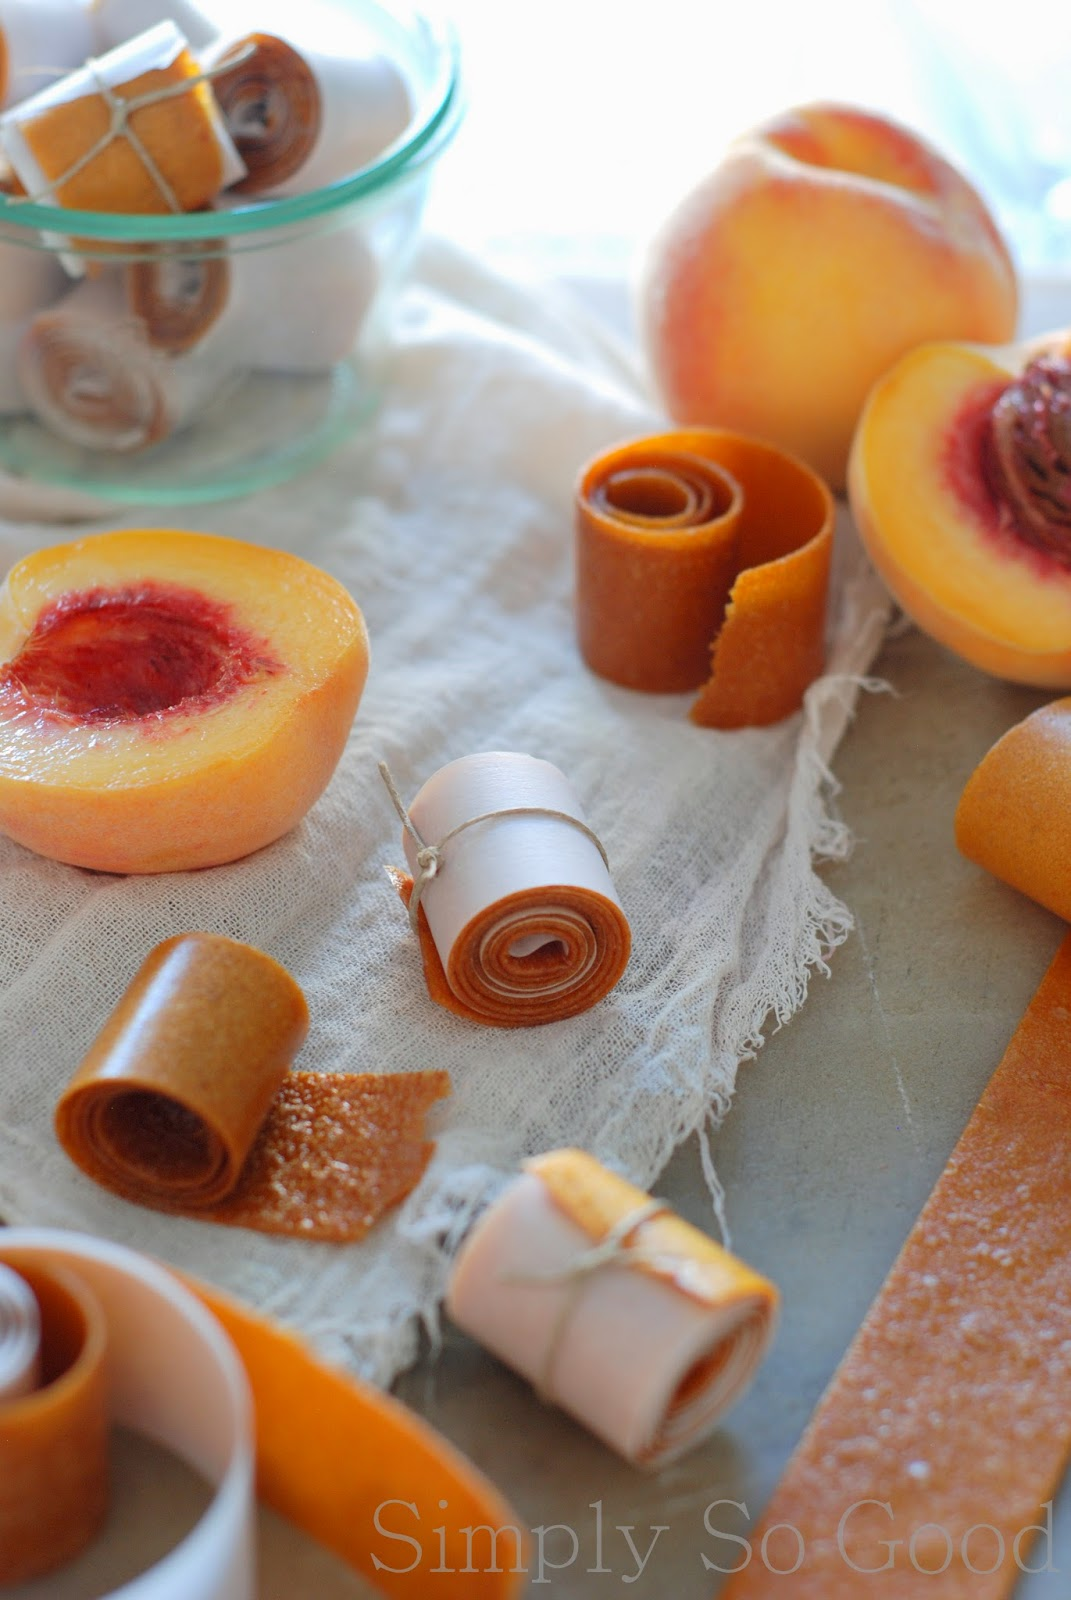 Simply So Good: Peach Fruit Leather. Yes! I'm Still on a Peach Kick.